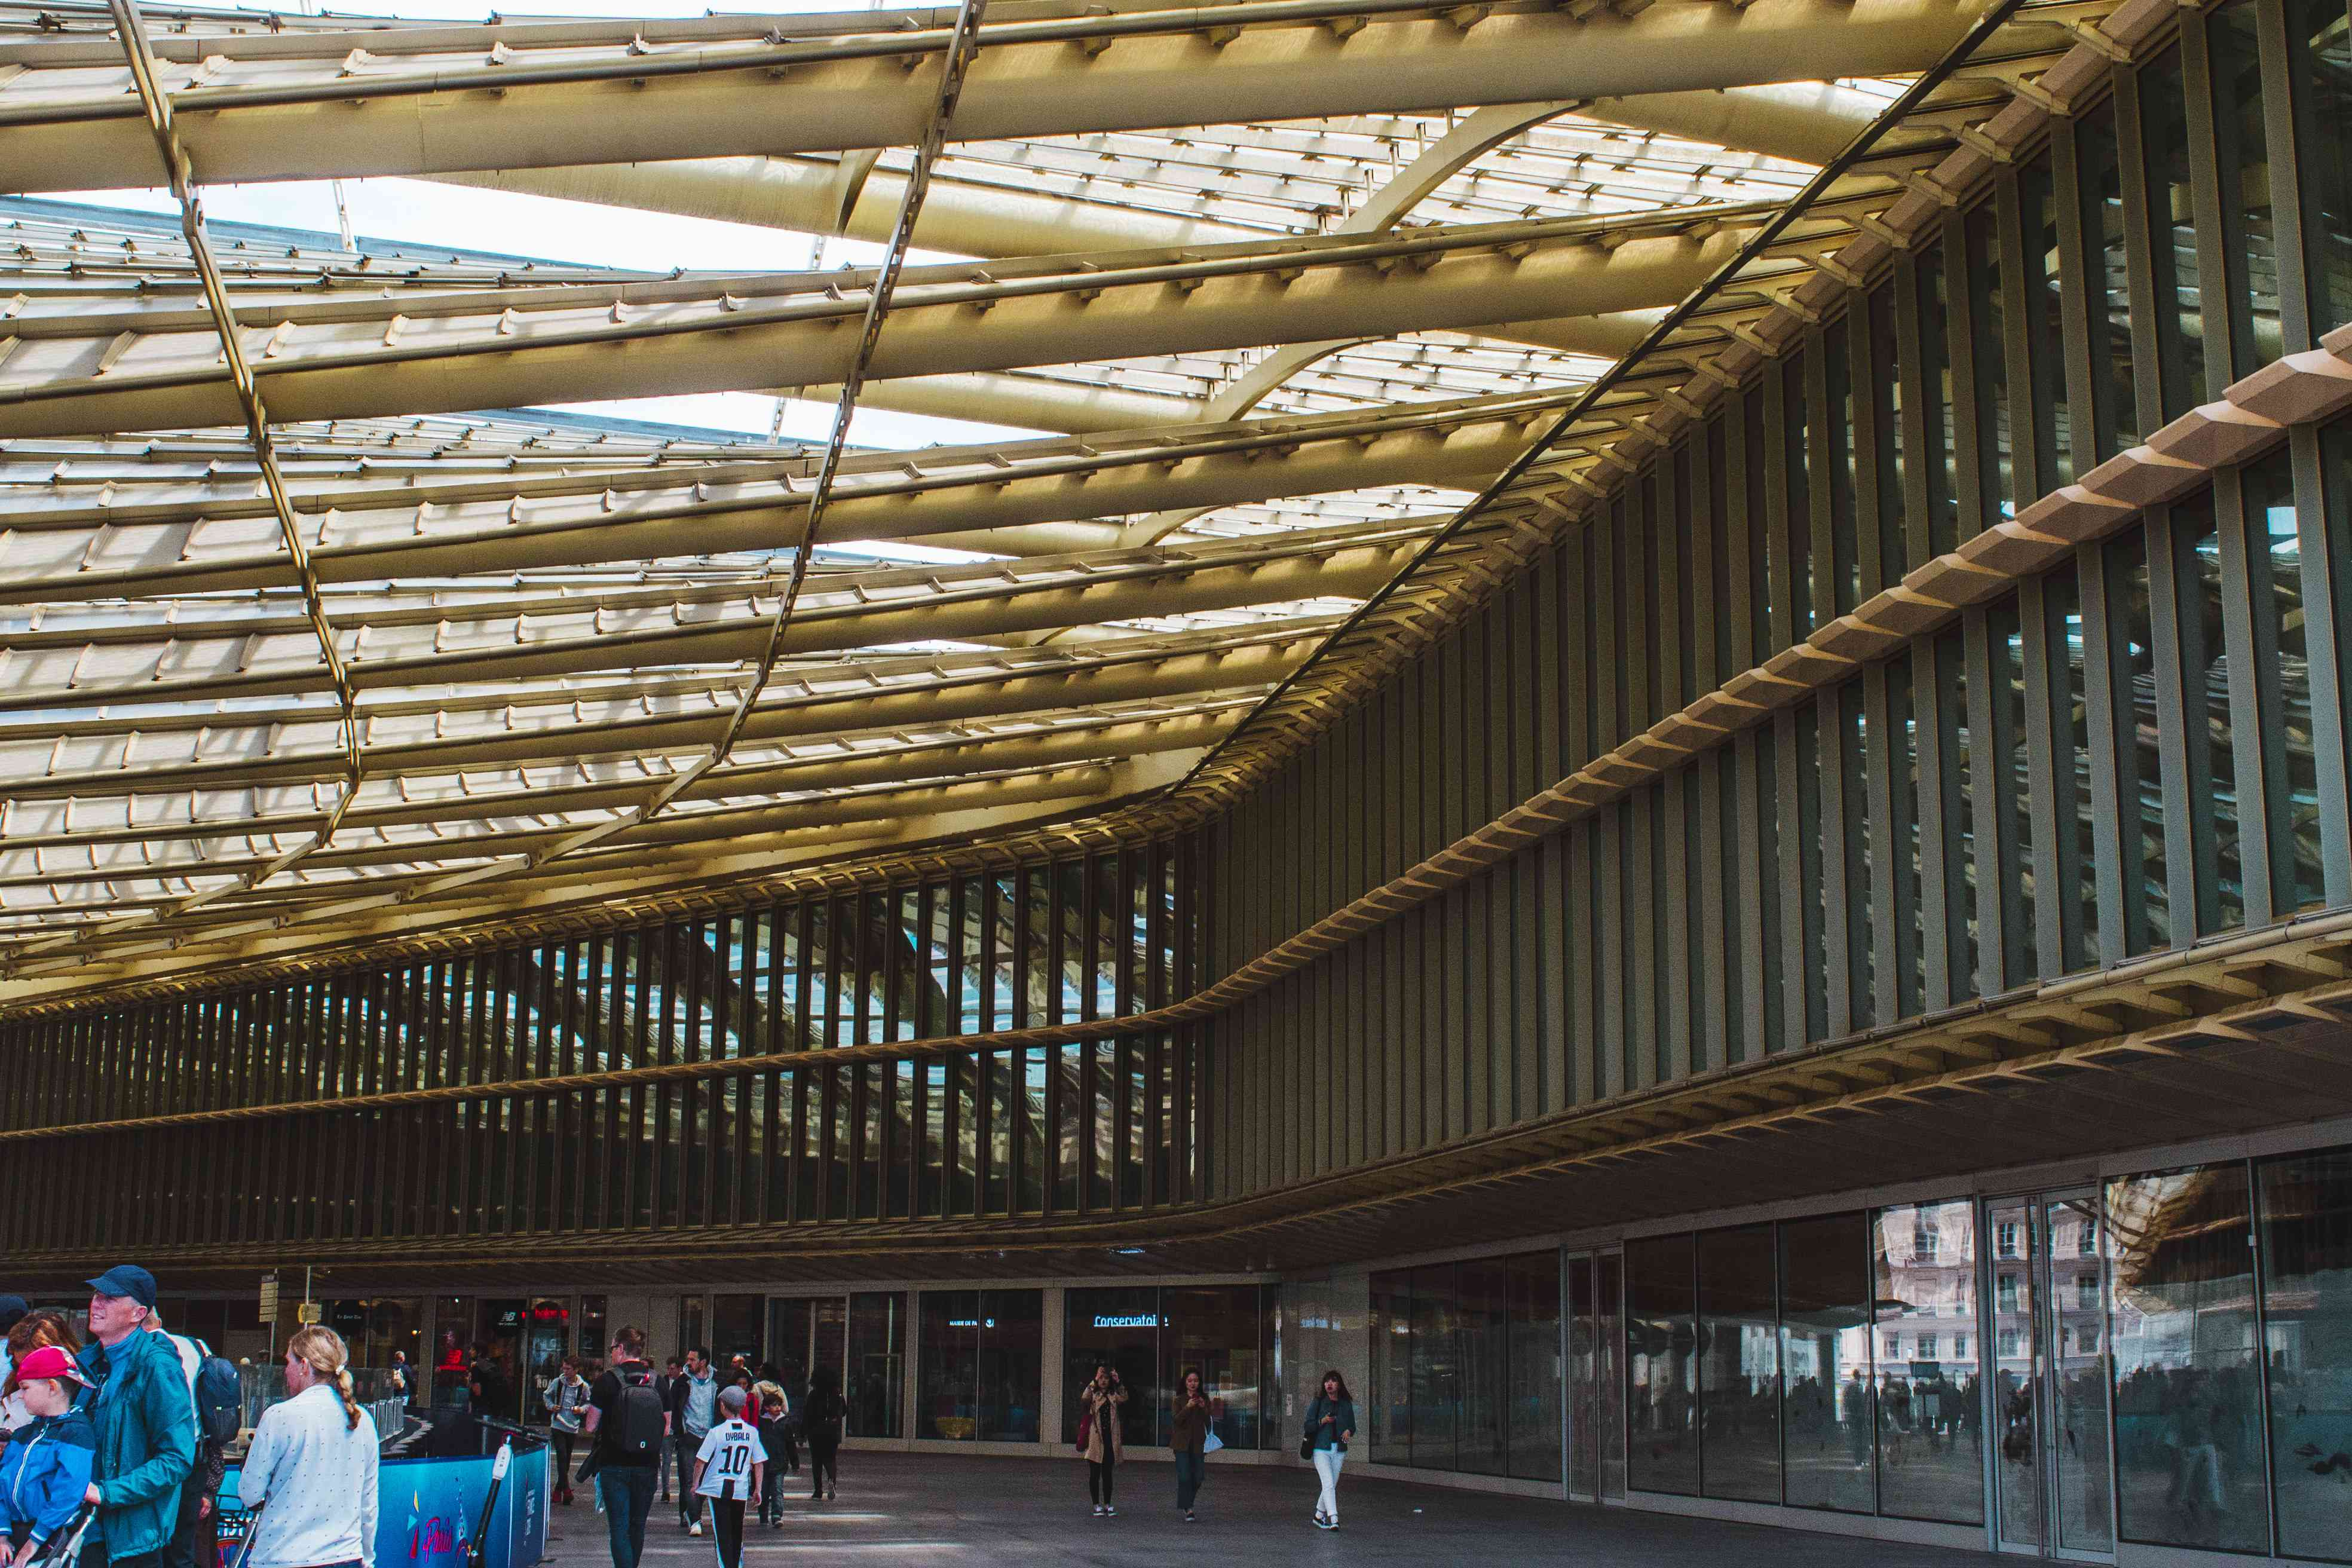 Architecture of Les Halles shopping center